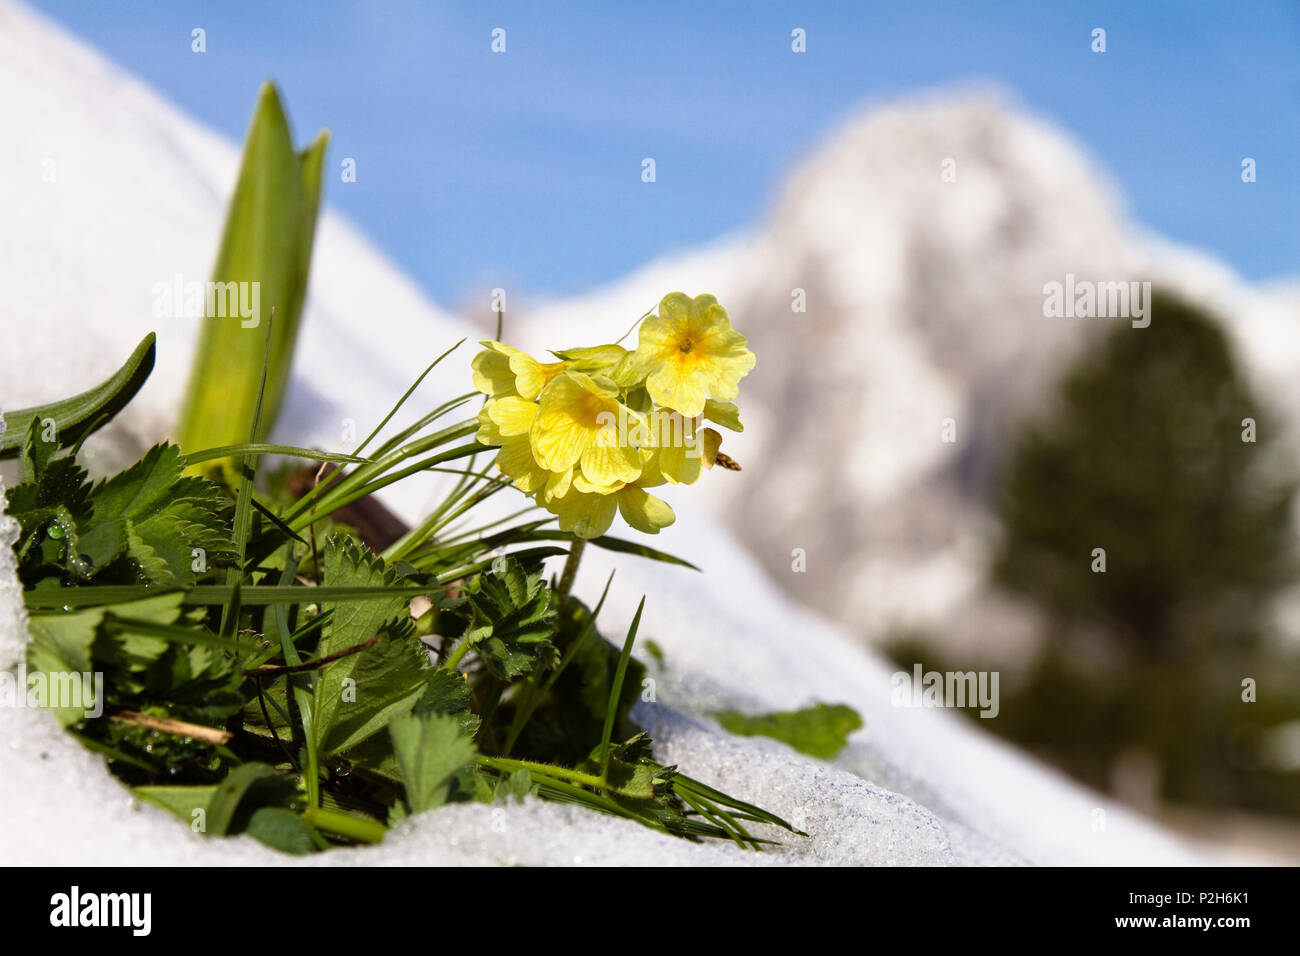 Cowslip in snow, Primula elatior, Alps, Upper Bavaria, Germany, Europe Stock Photo